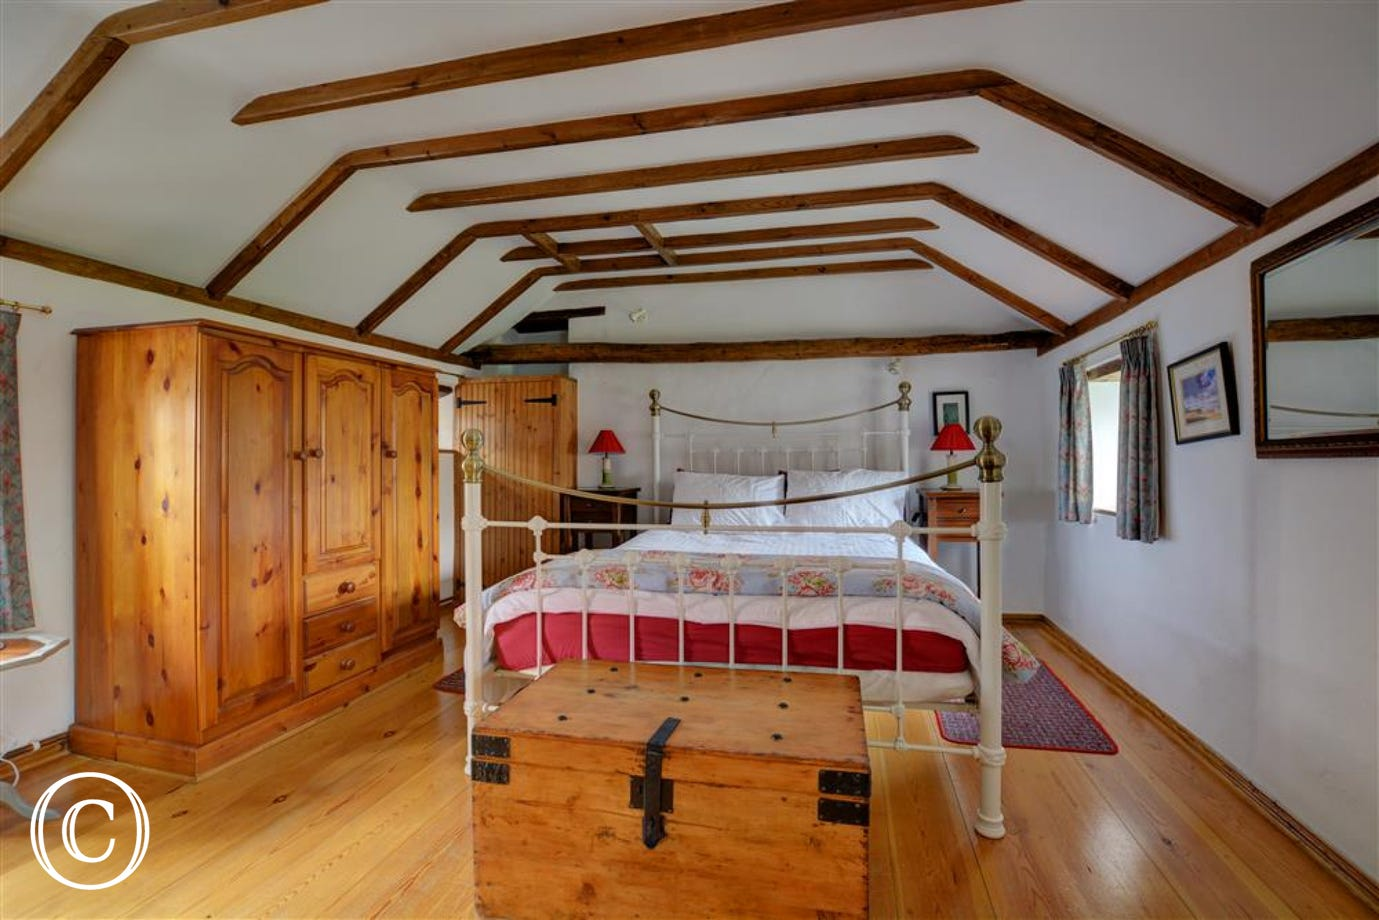 View of the bedroom with kingsize wrought iron bed, pine furniture and beams a room with true cottage style.